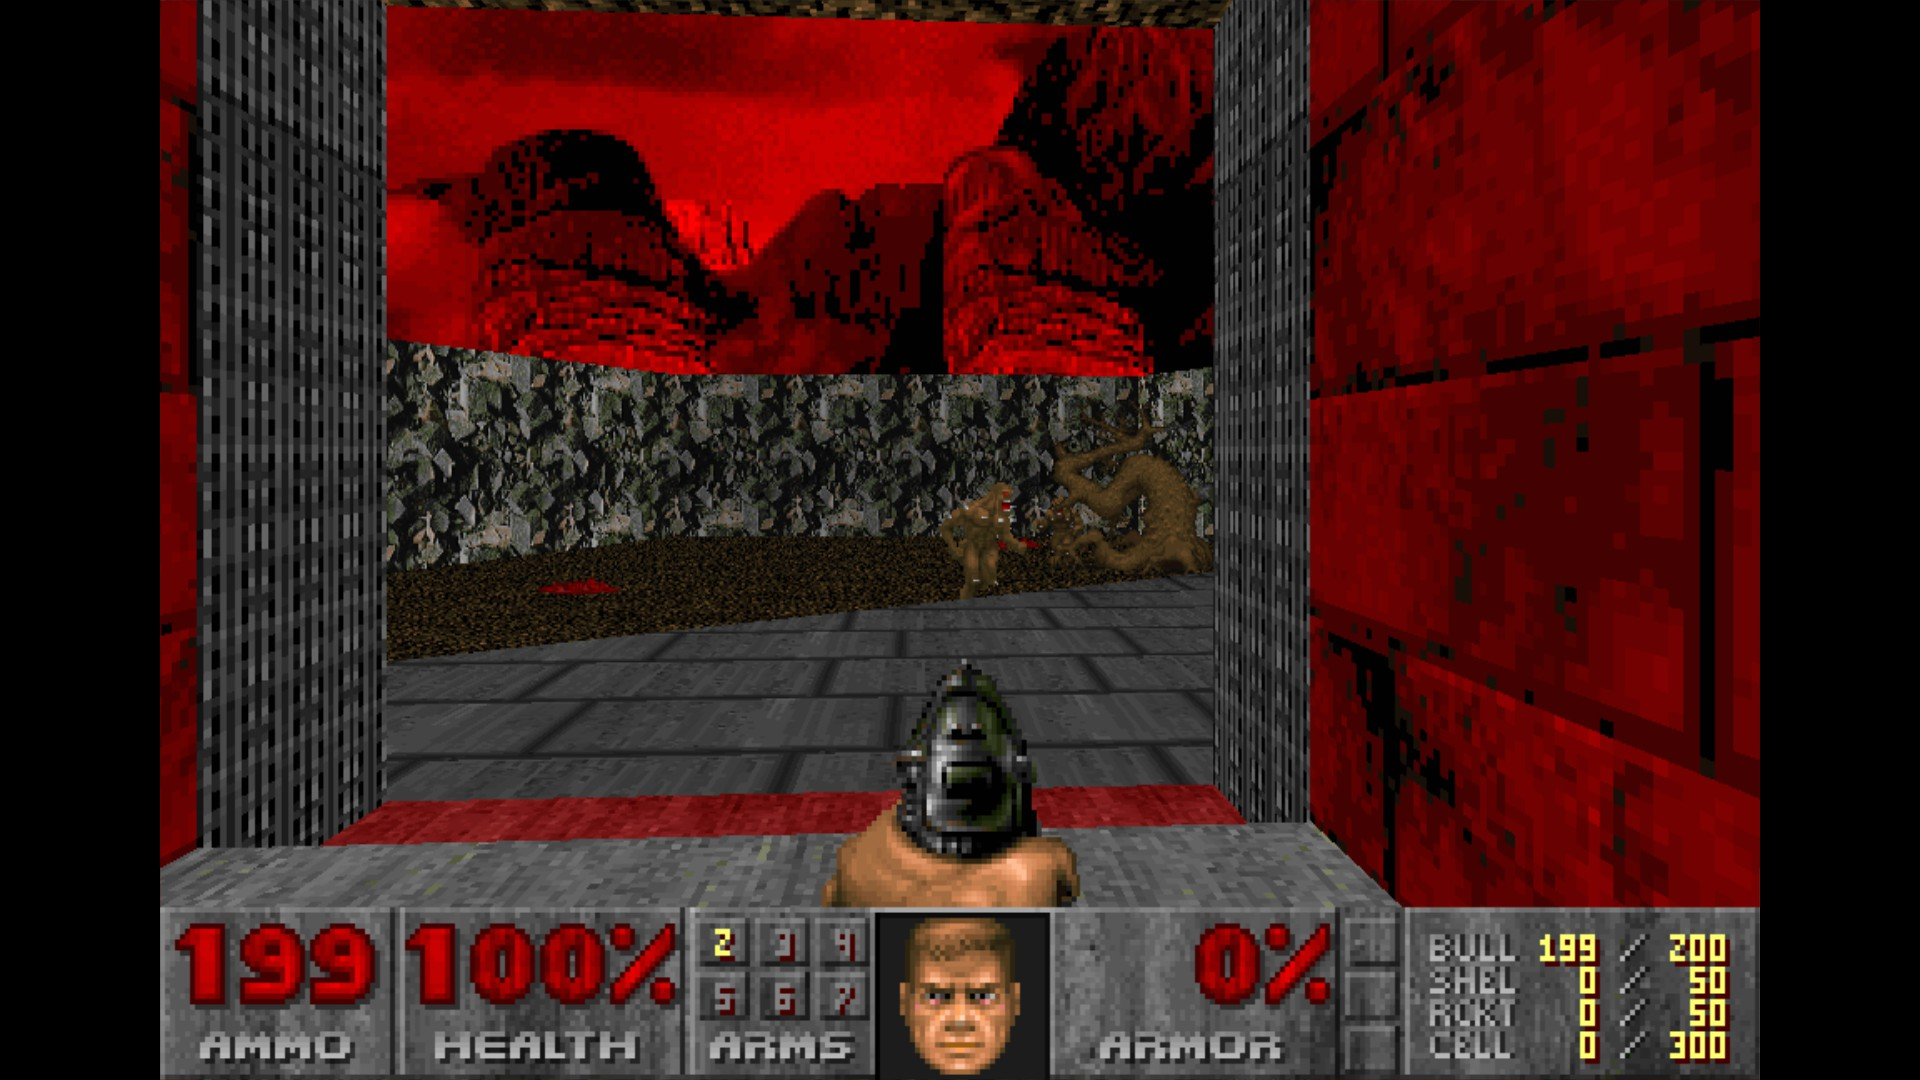 doom-3-bfg-edition-pc-review-004 – Capsule Computers